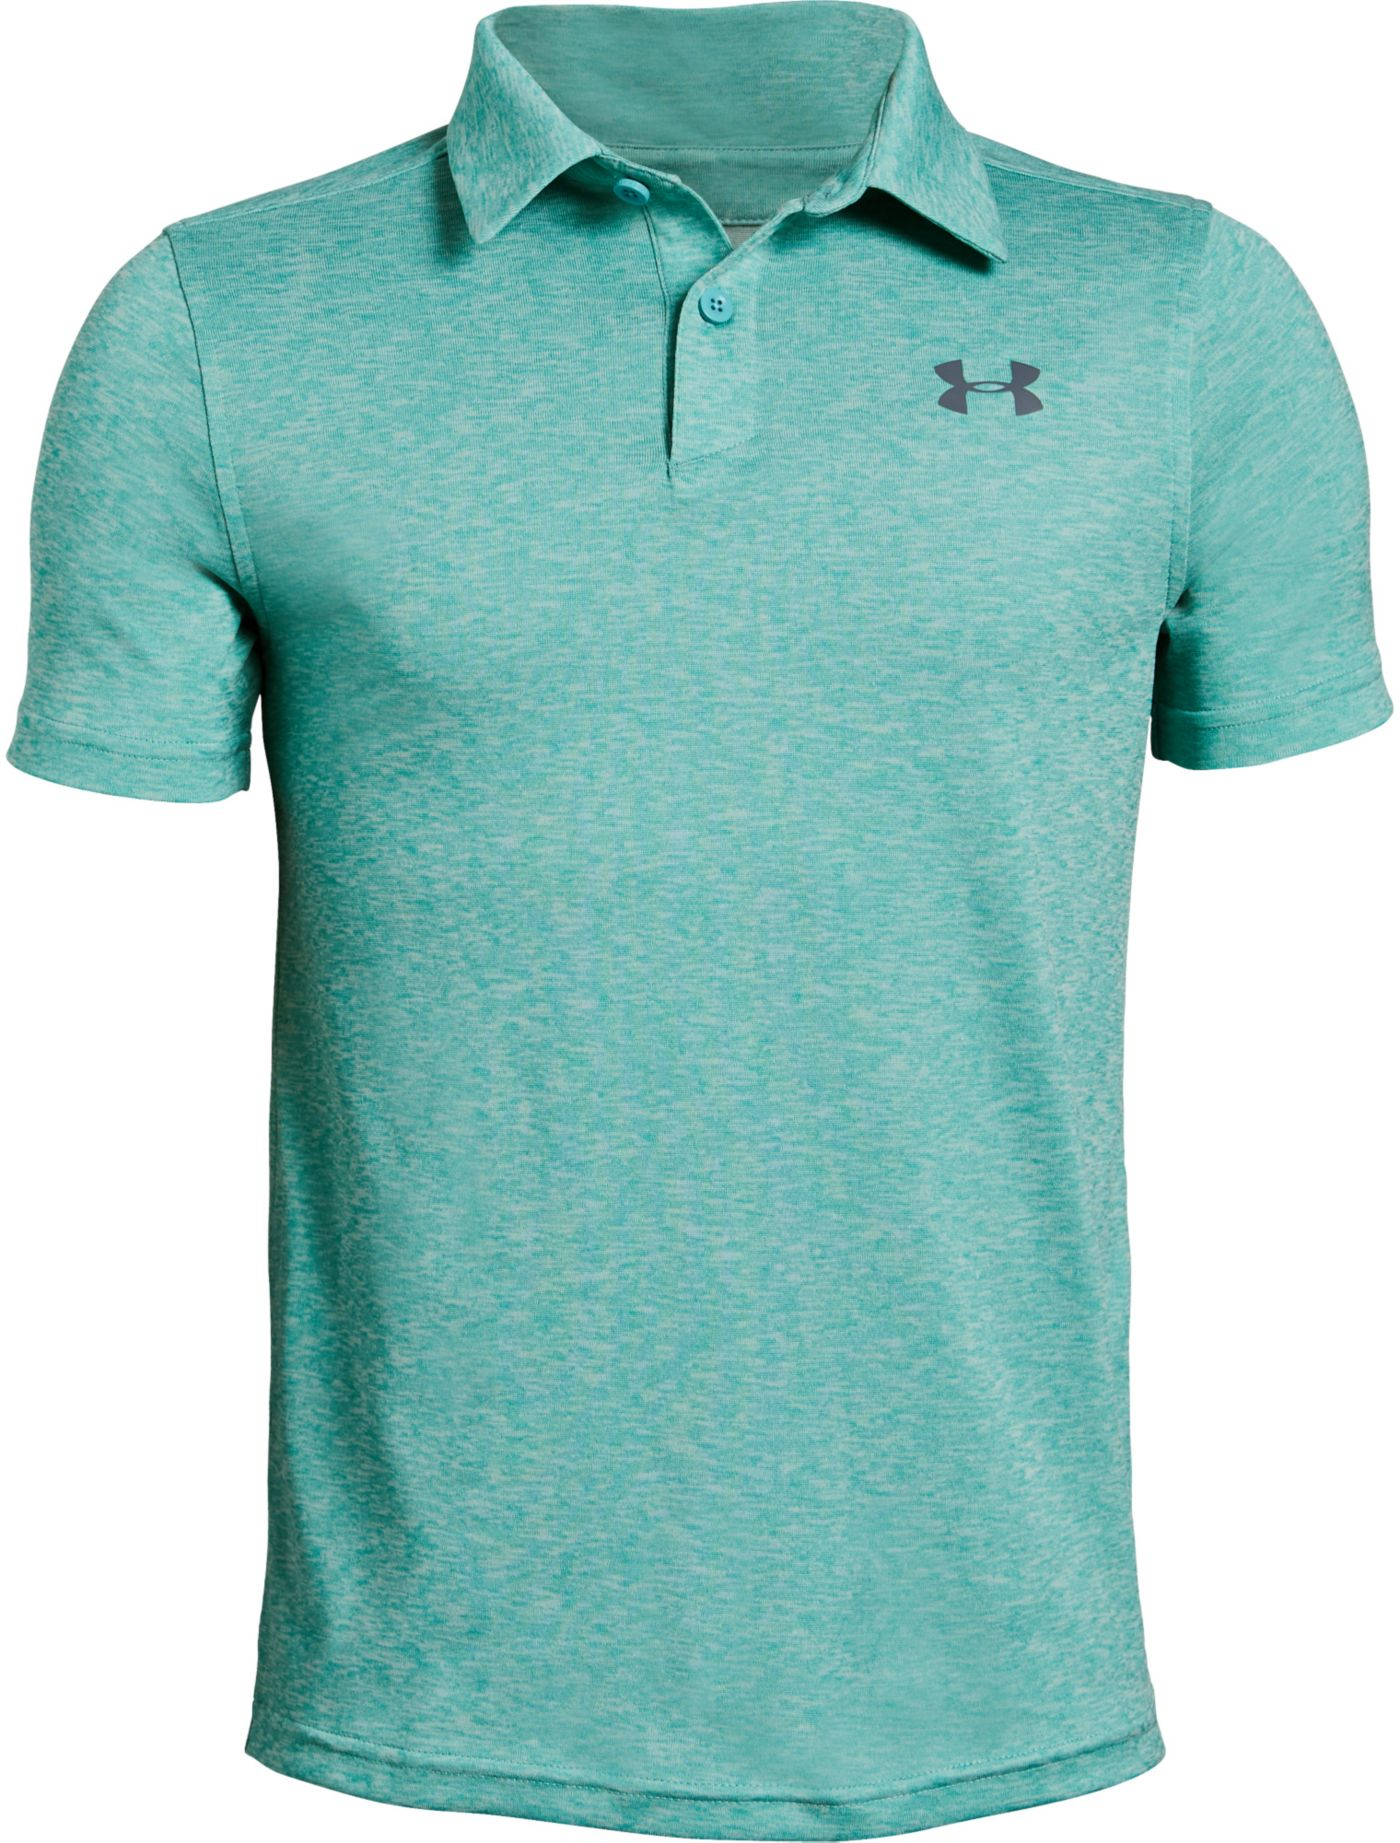 Under Armour Boys' Heather Vanish Golf Polo